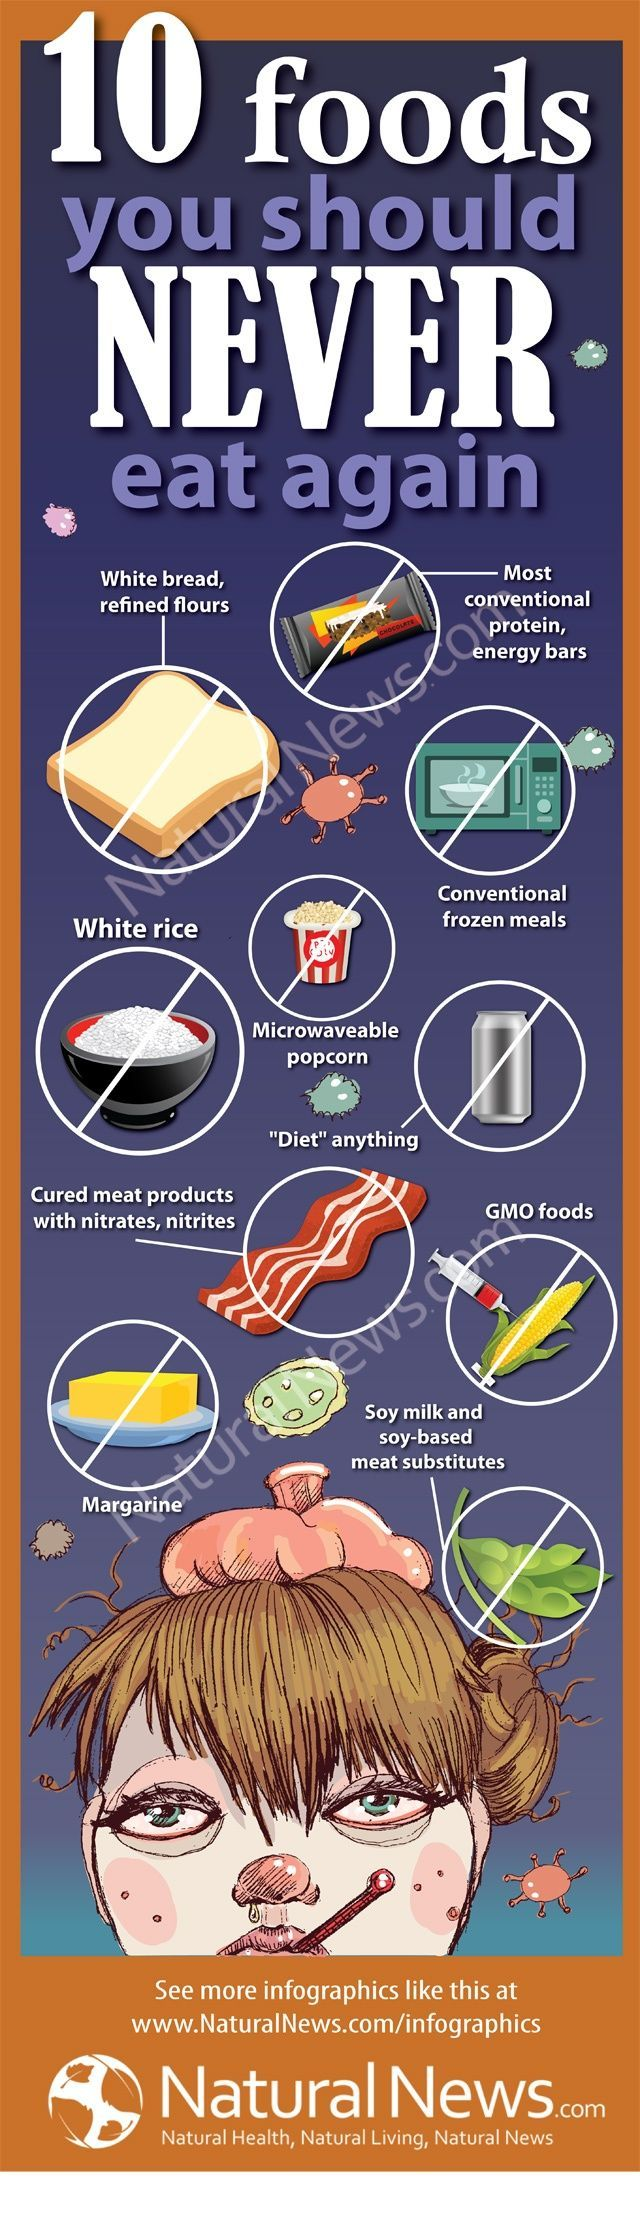 just say no to gmo Visit my site http://youtu.be/4yfEGZnJ96M #health #healthydiet #diet